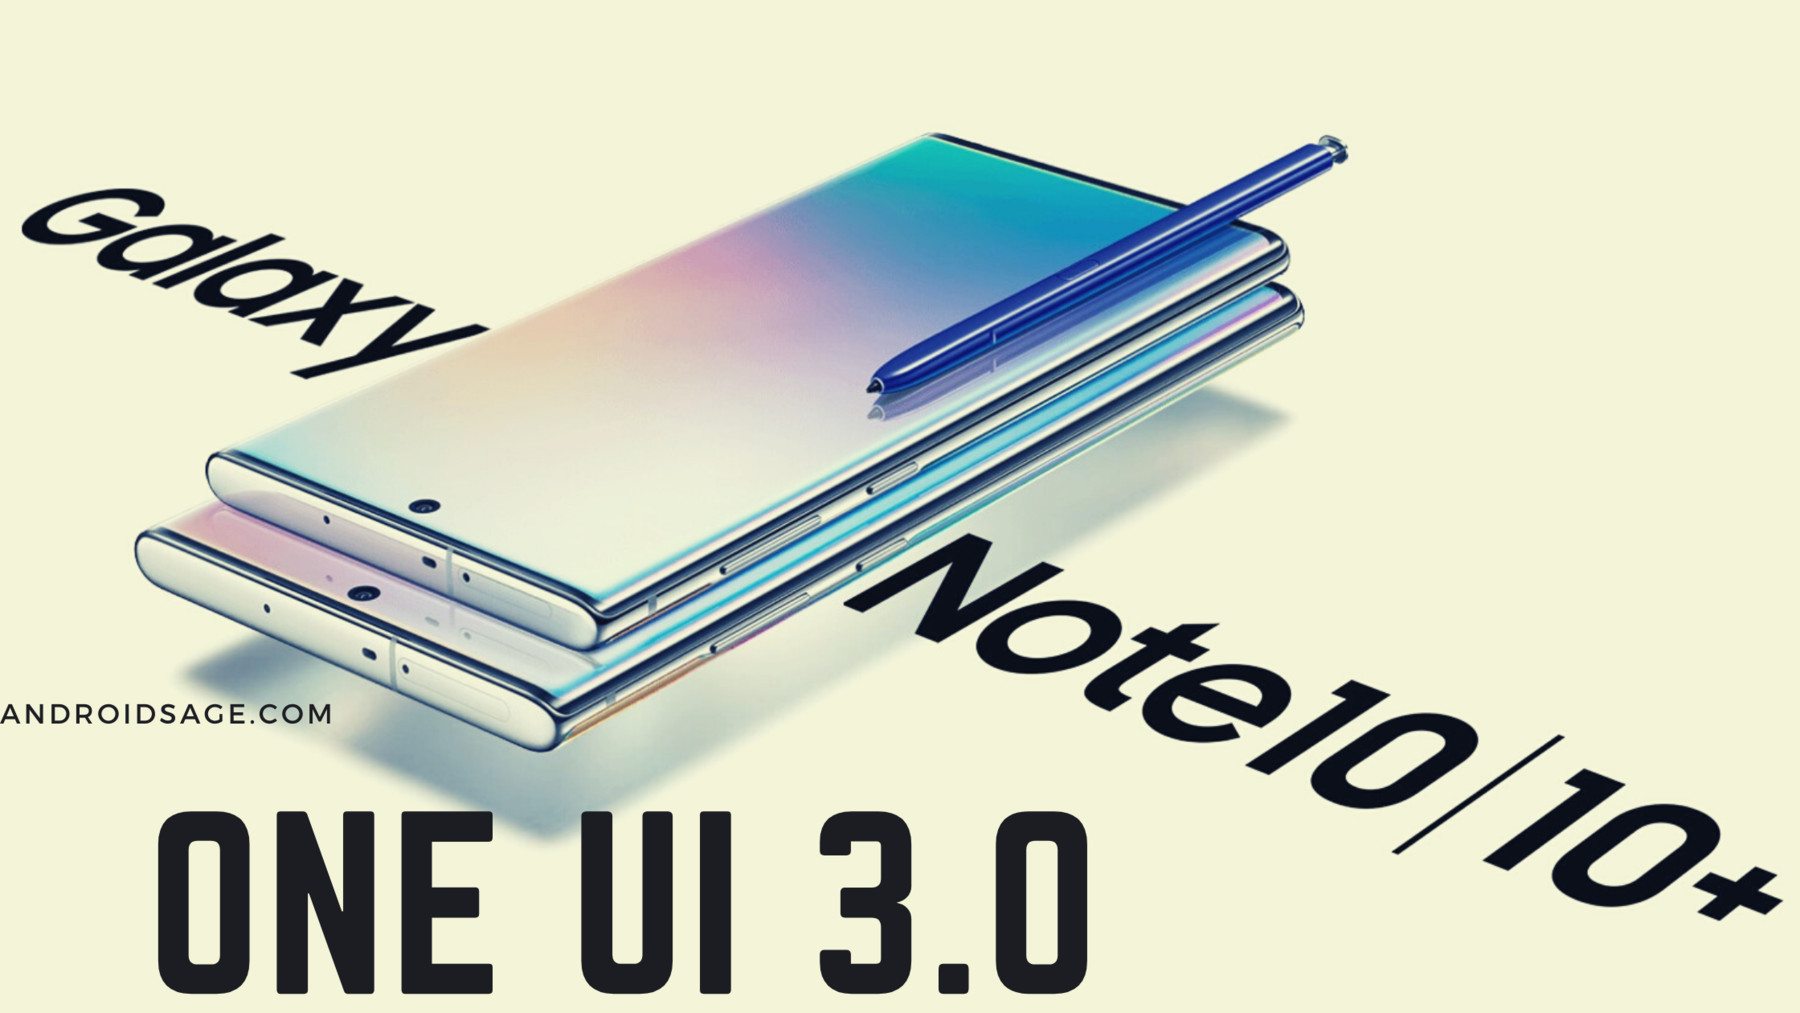 One UI 3.0 for Galaxy Note 10 plus